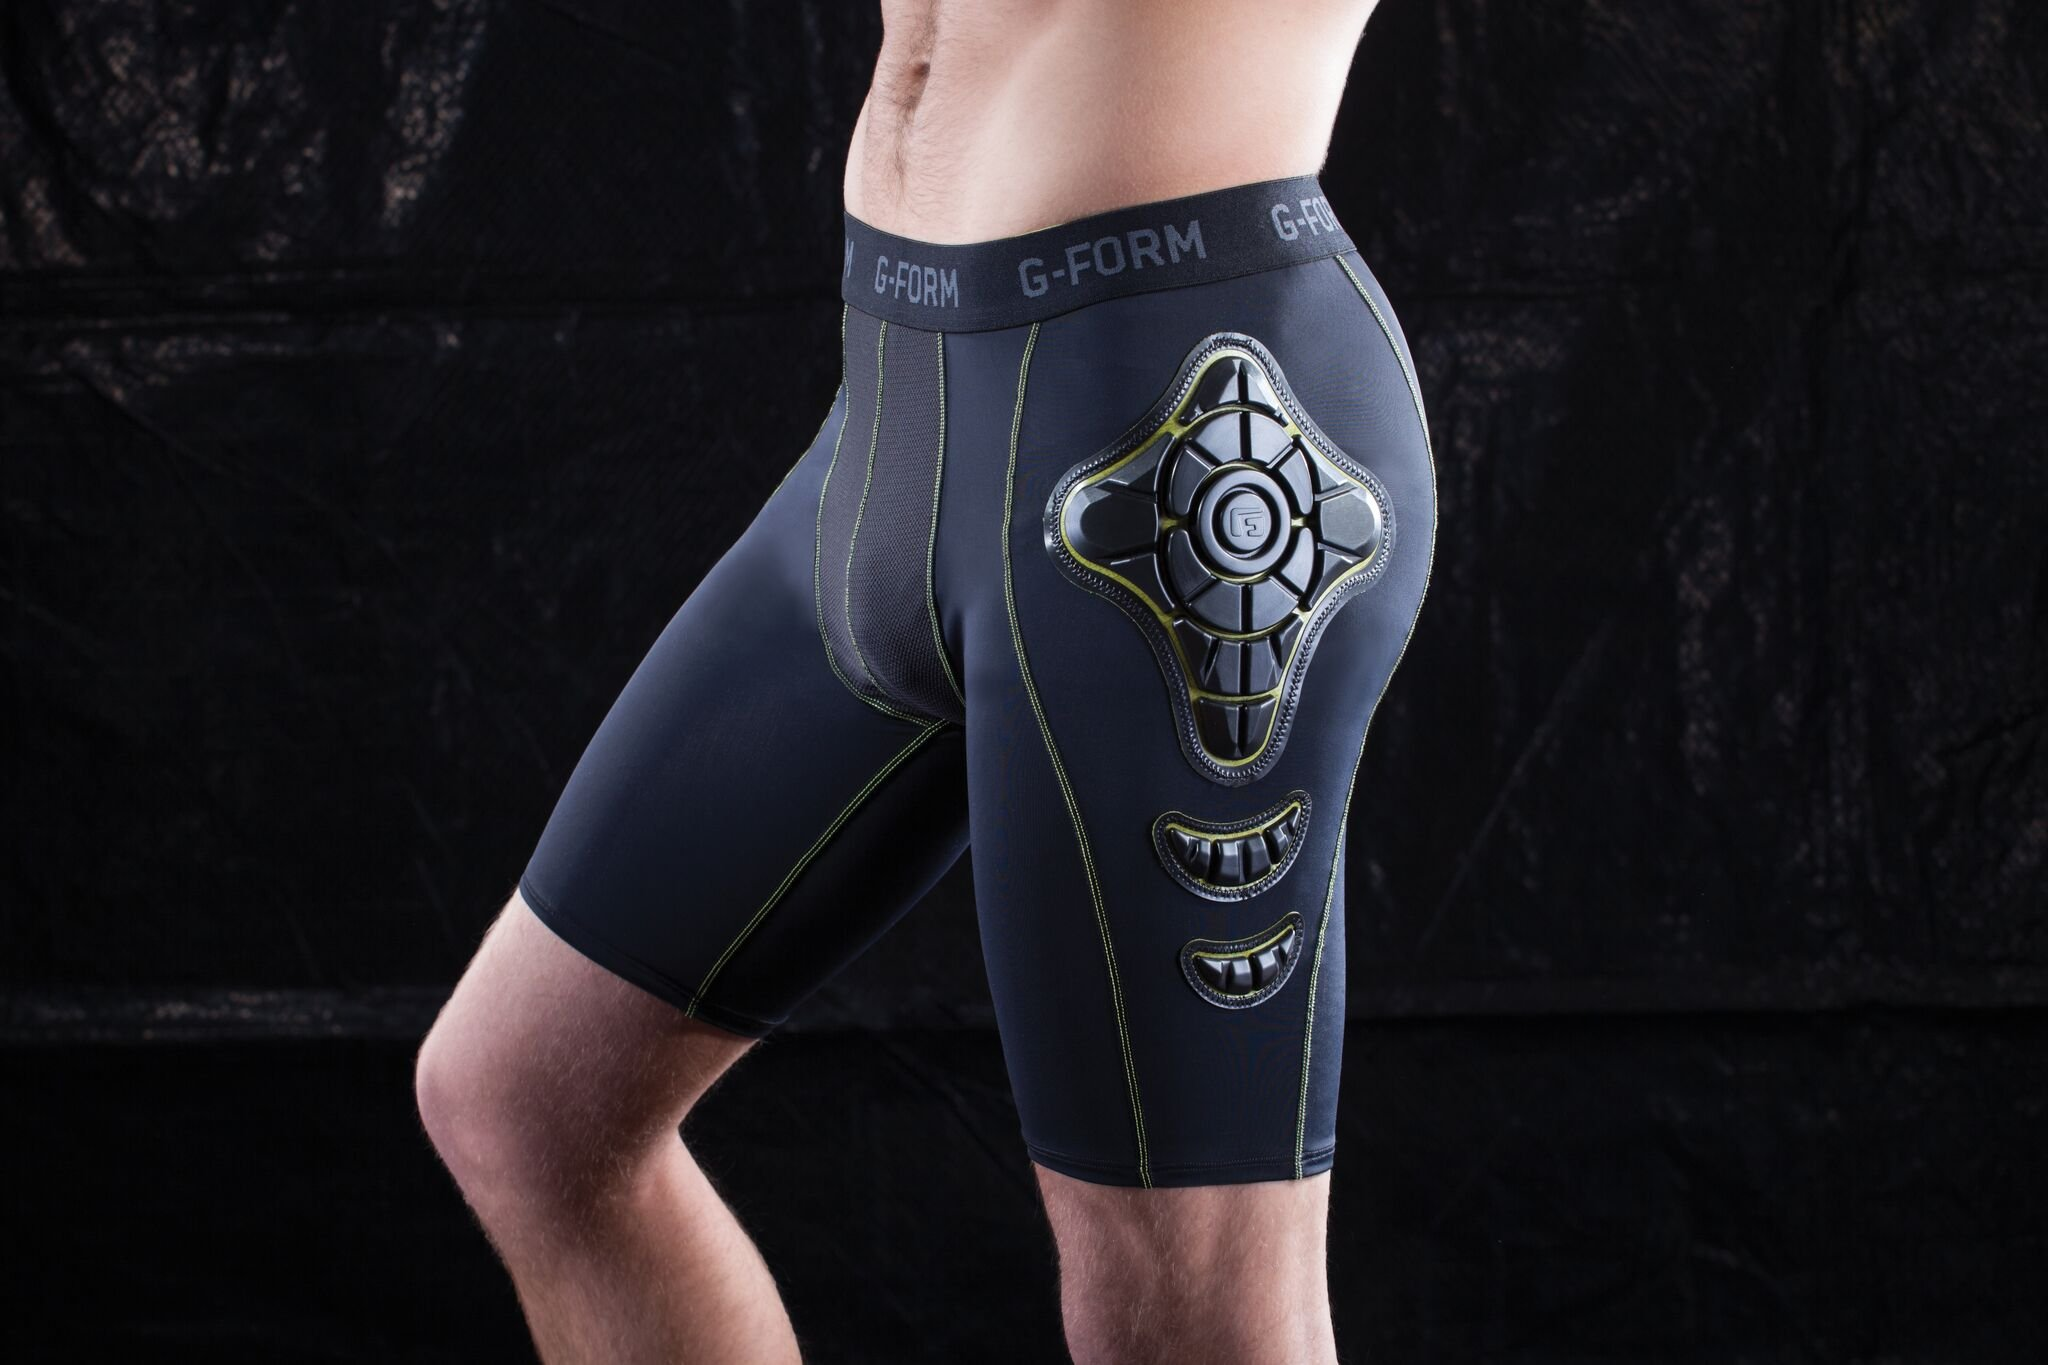 G-Form Pro-X Compression Shorts, Black/Yellow, Medium by G-Form (Image #4)